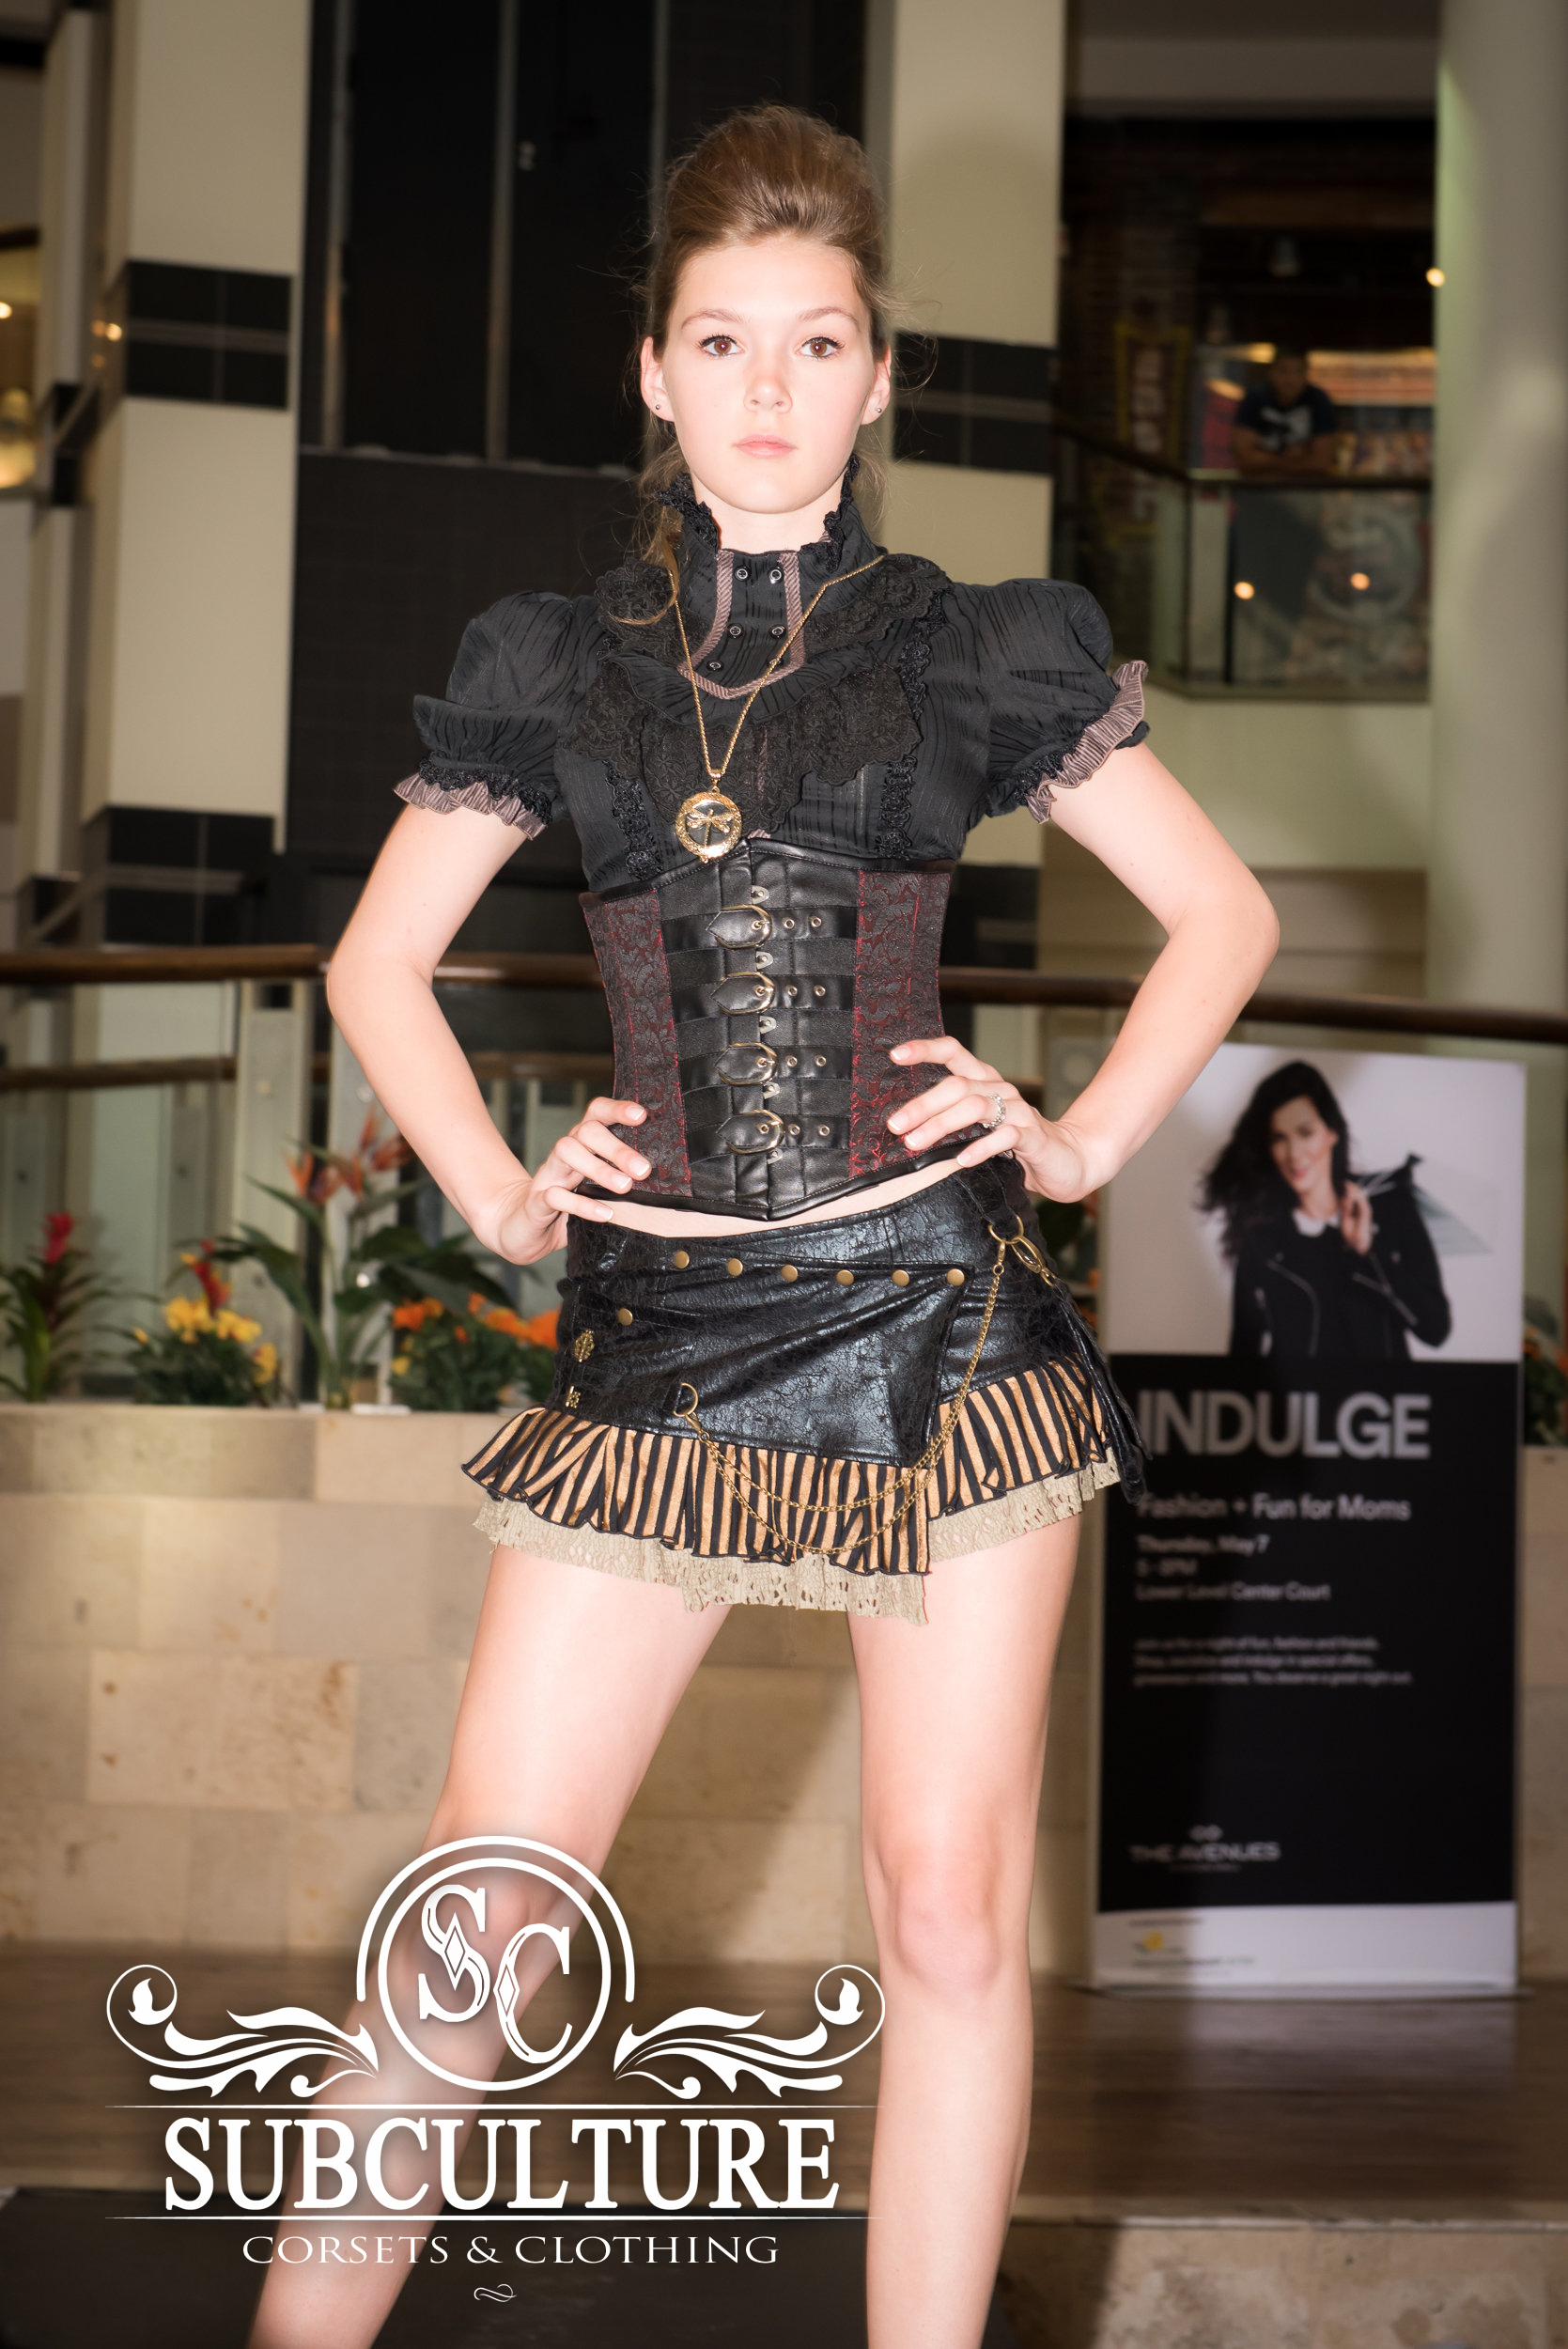 Subculture Corsets & Clothing image 7